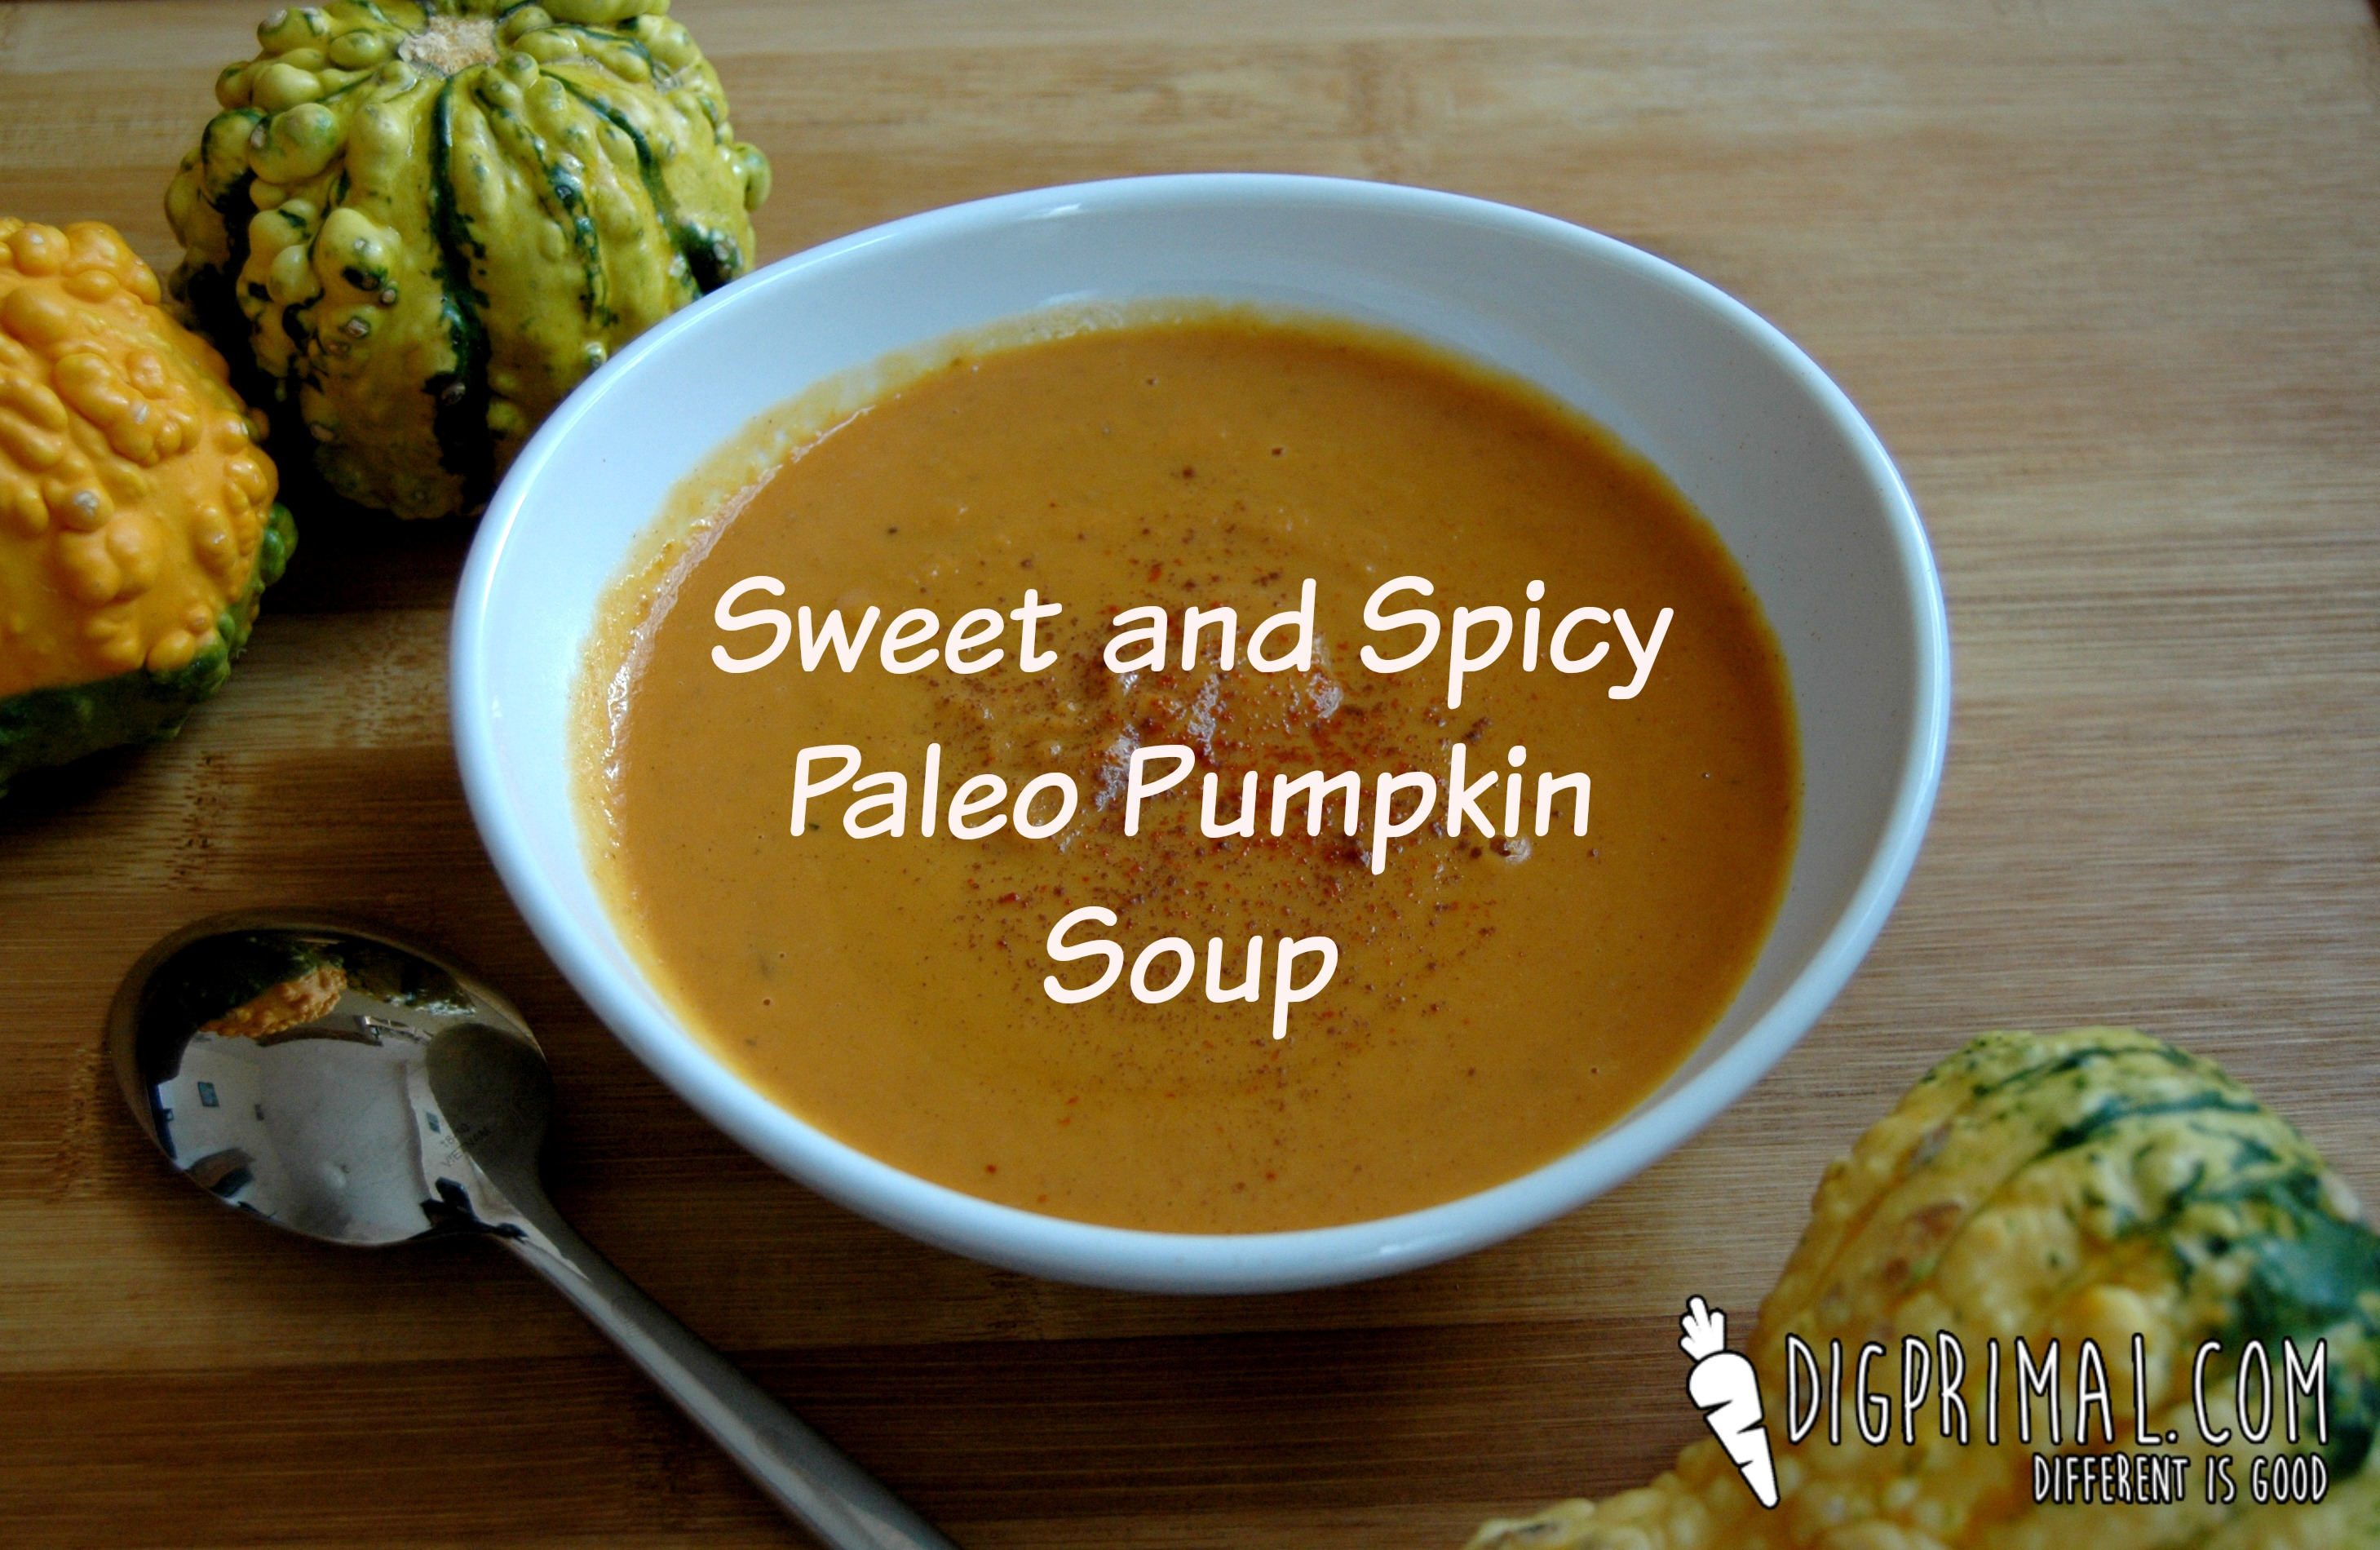 Sweet and Spicy Paleo Pumpkin Soup – D.I.G.